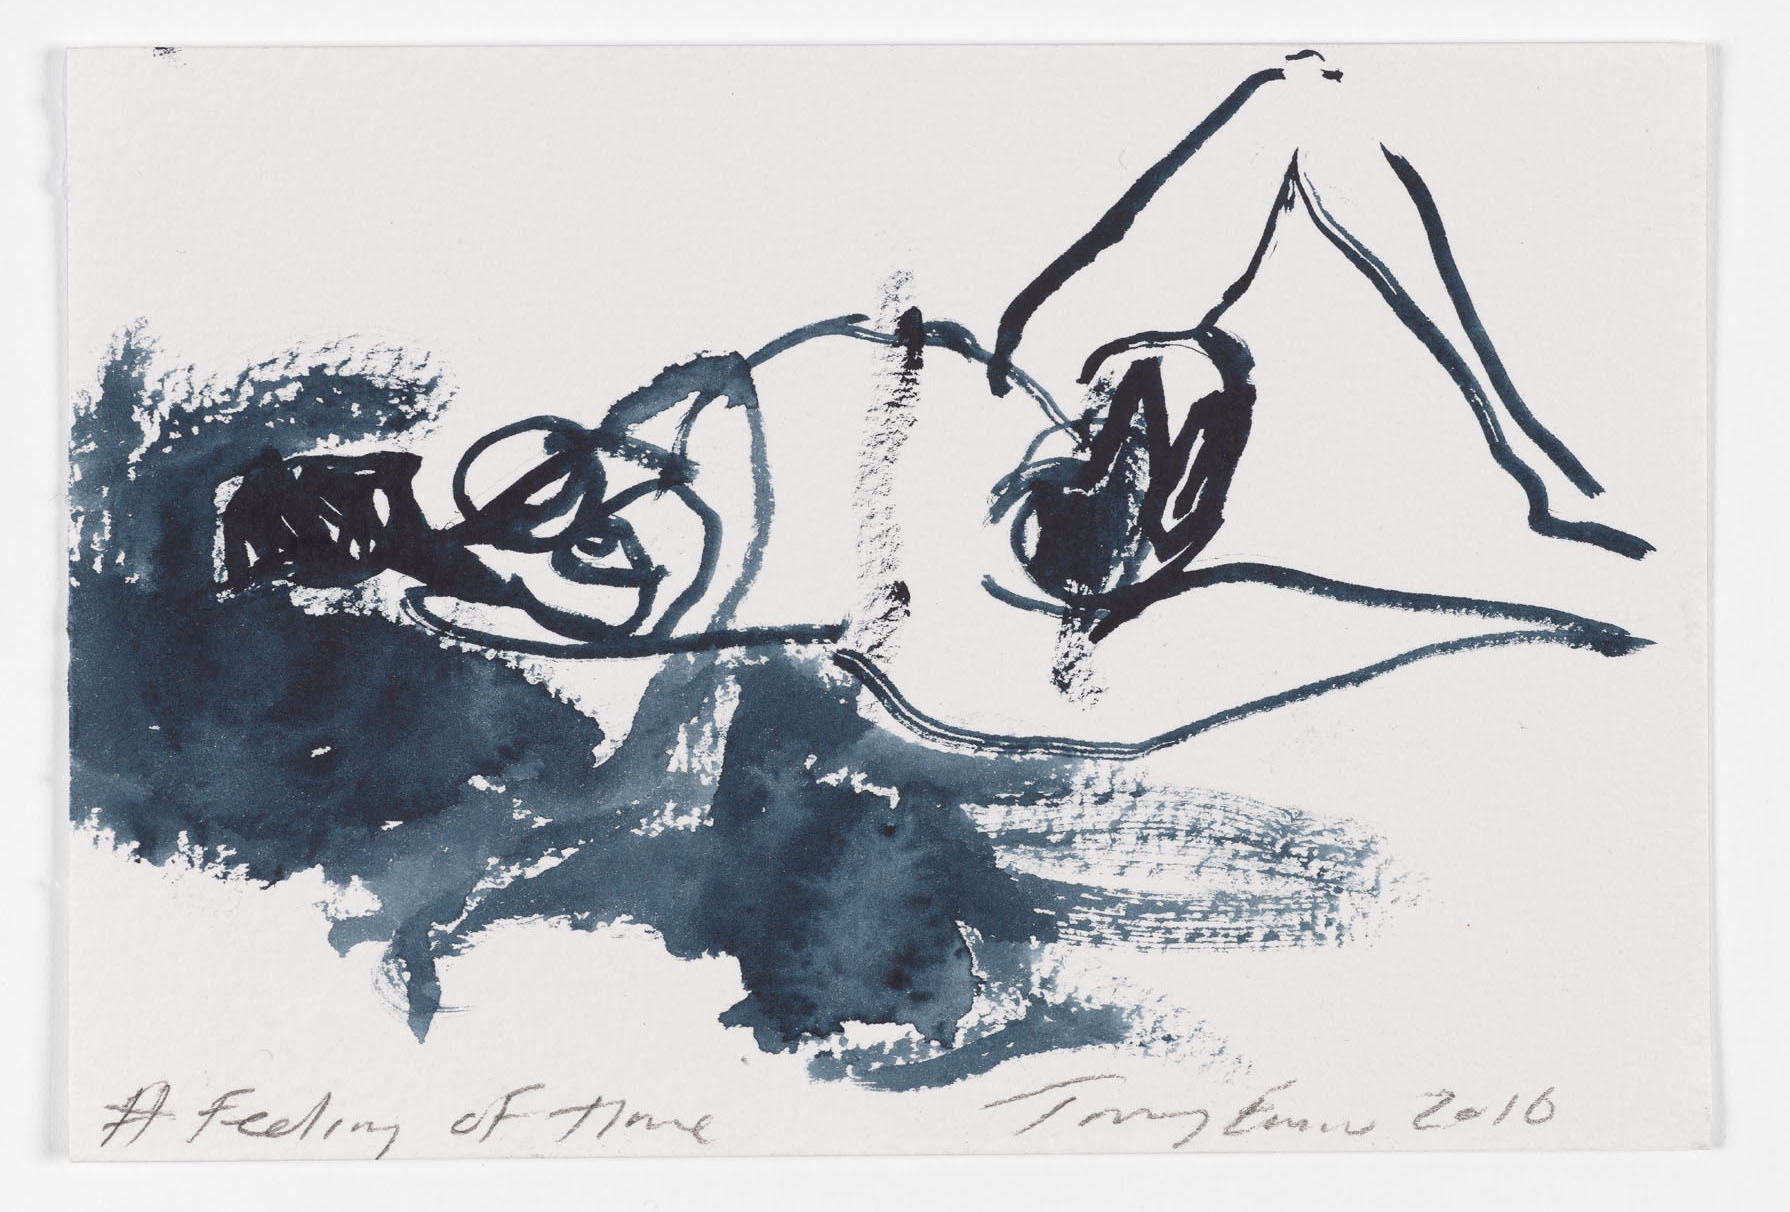 Tracey Emin, A Feeling of Time , 2016 gouache on paper 10 x 14,8 cm 3 7⁄8 × 5 3⁄4 in.Photo credit: Prudence Cummings Associates Courtesy the Artist and Xavier Hufkens, Brussels